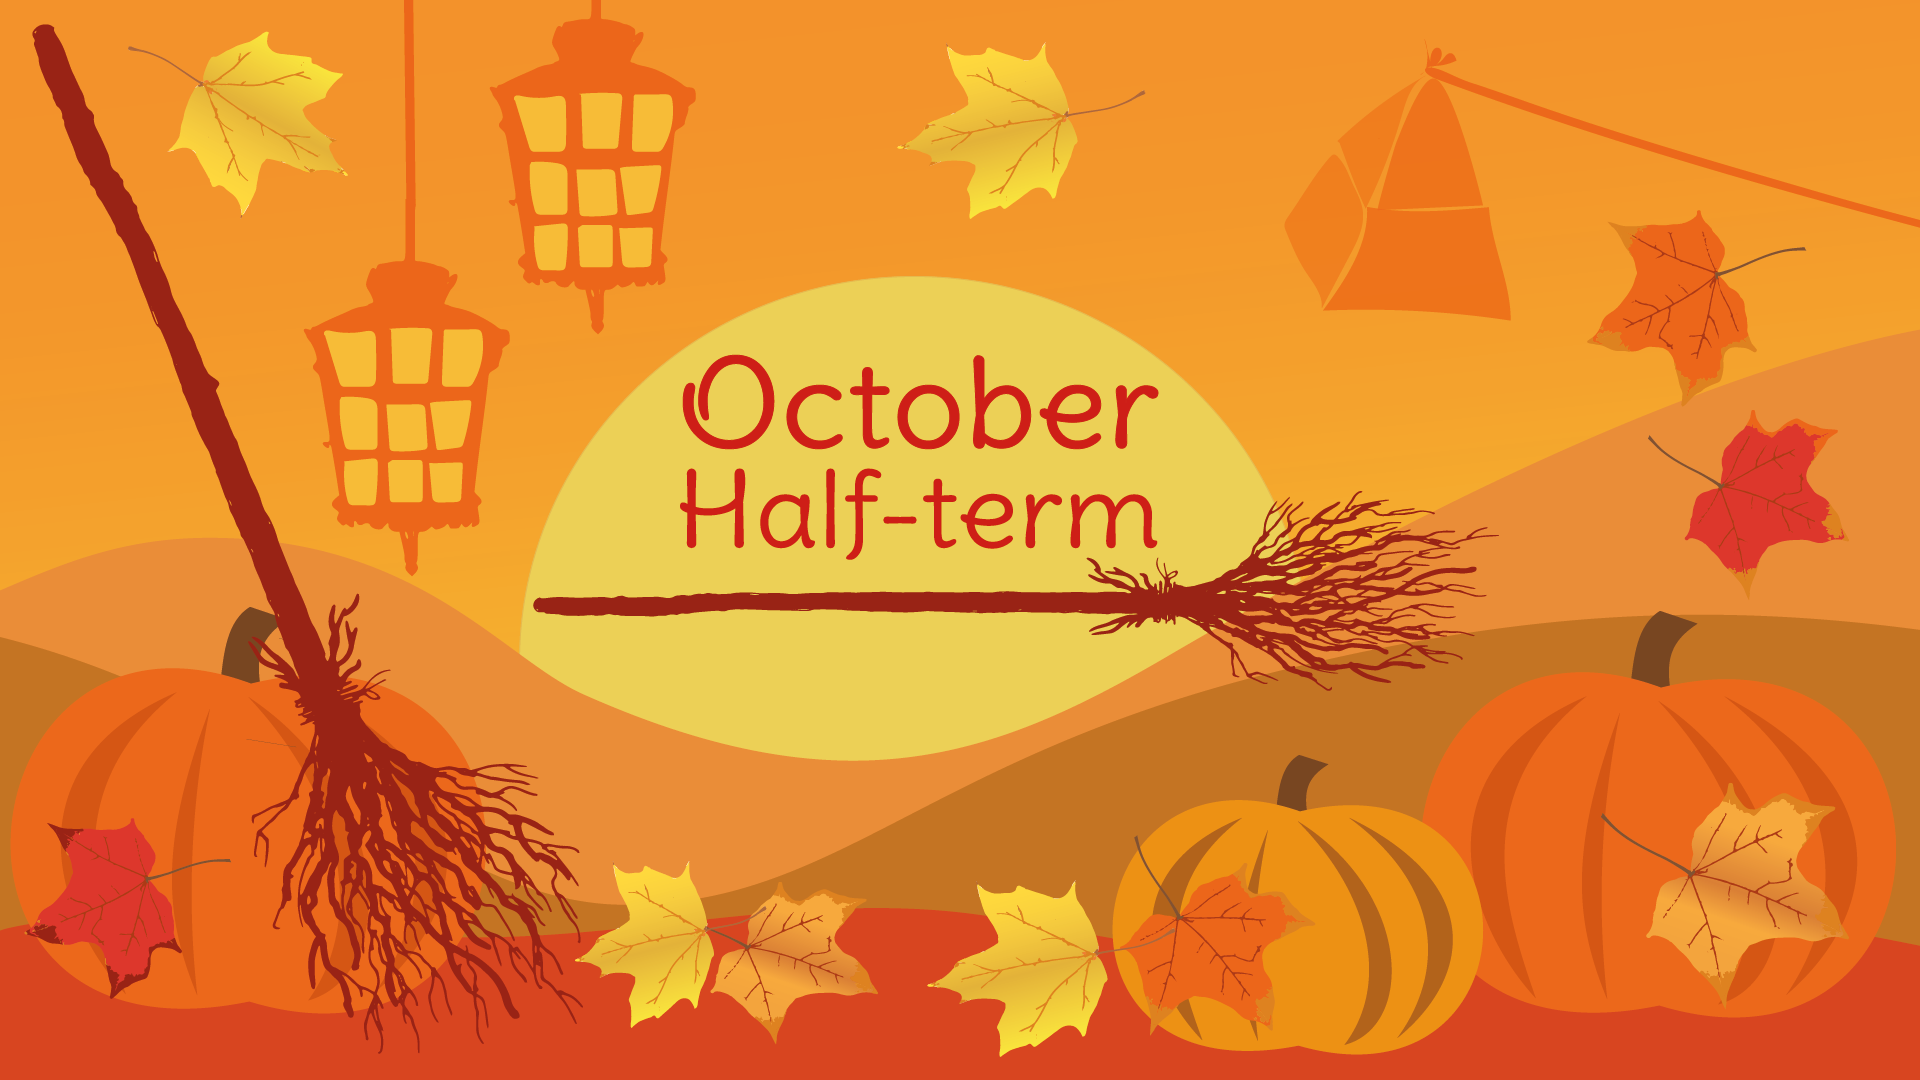 Broomsticks and Autumn imagery with the text October Half-term